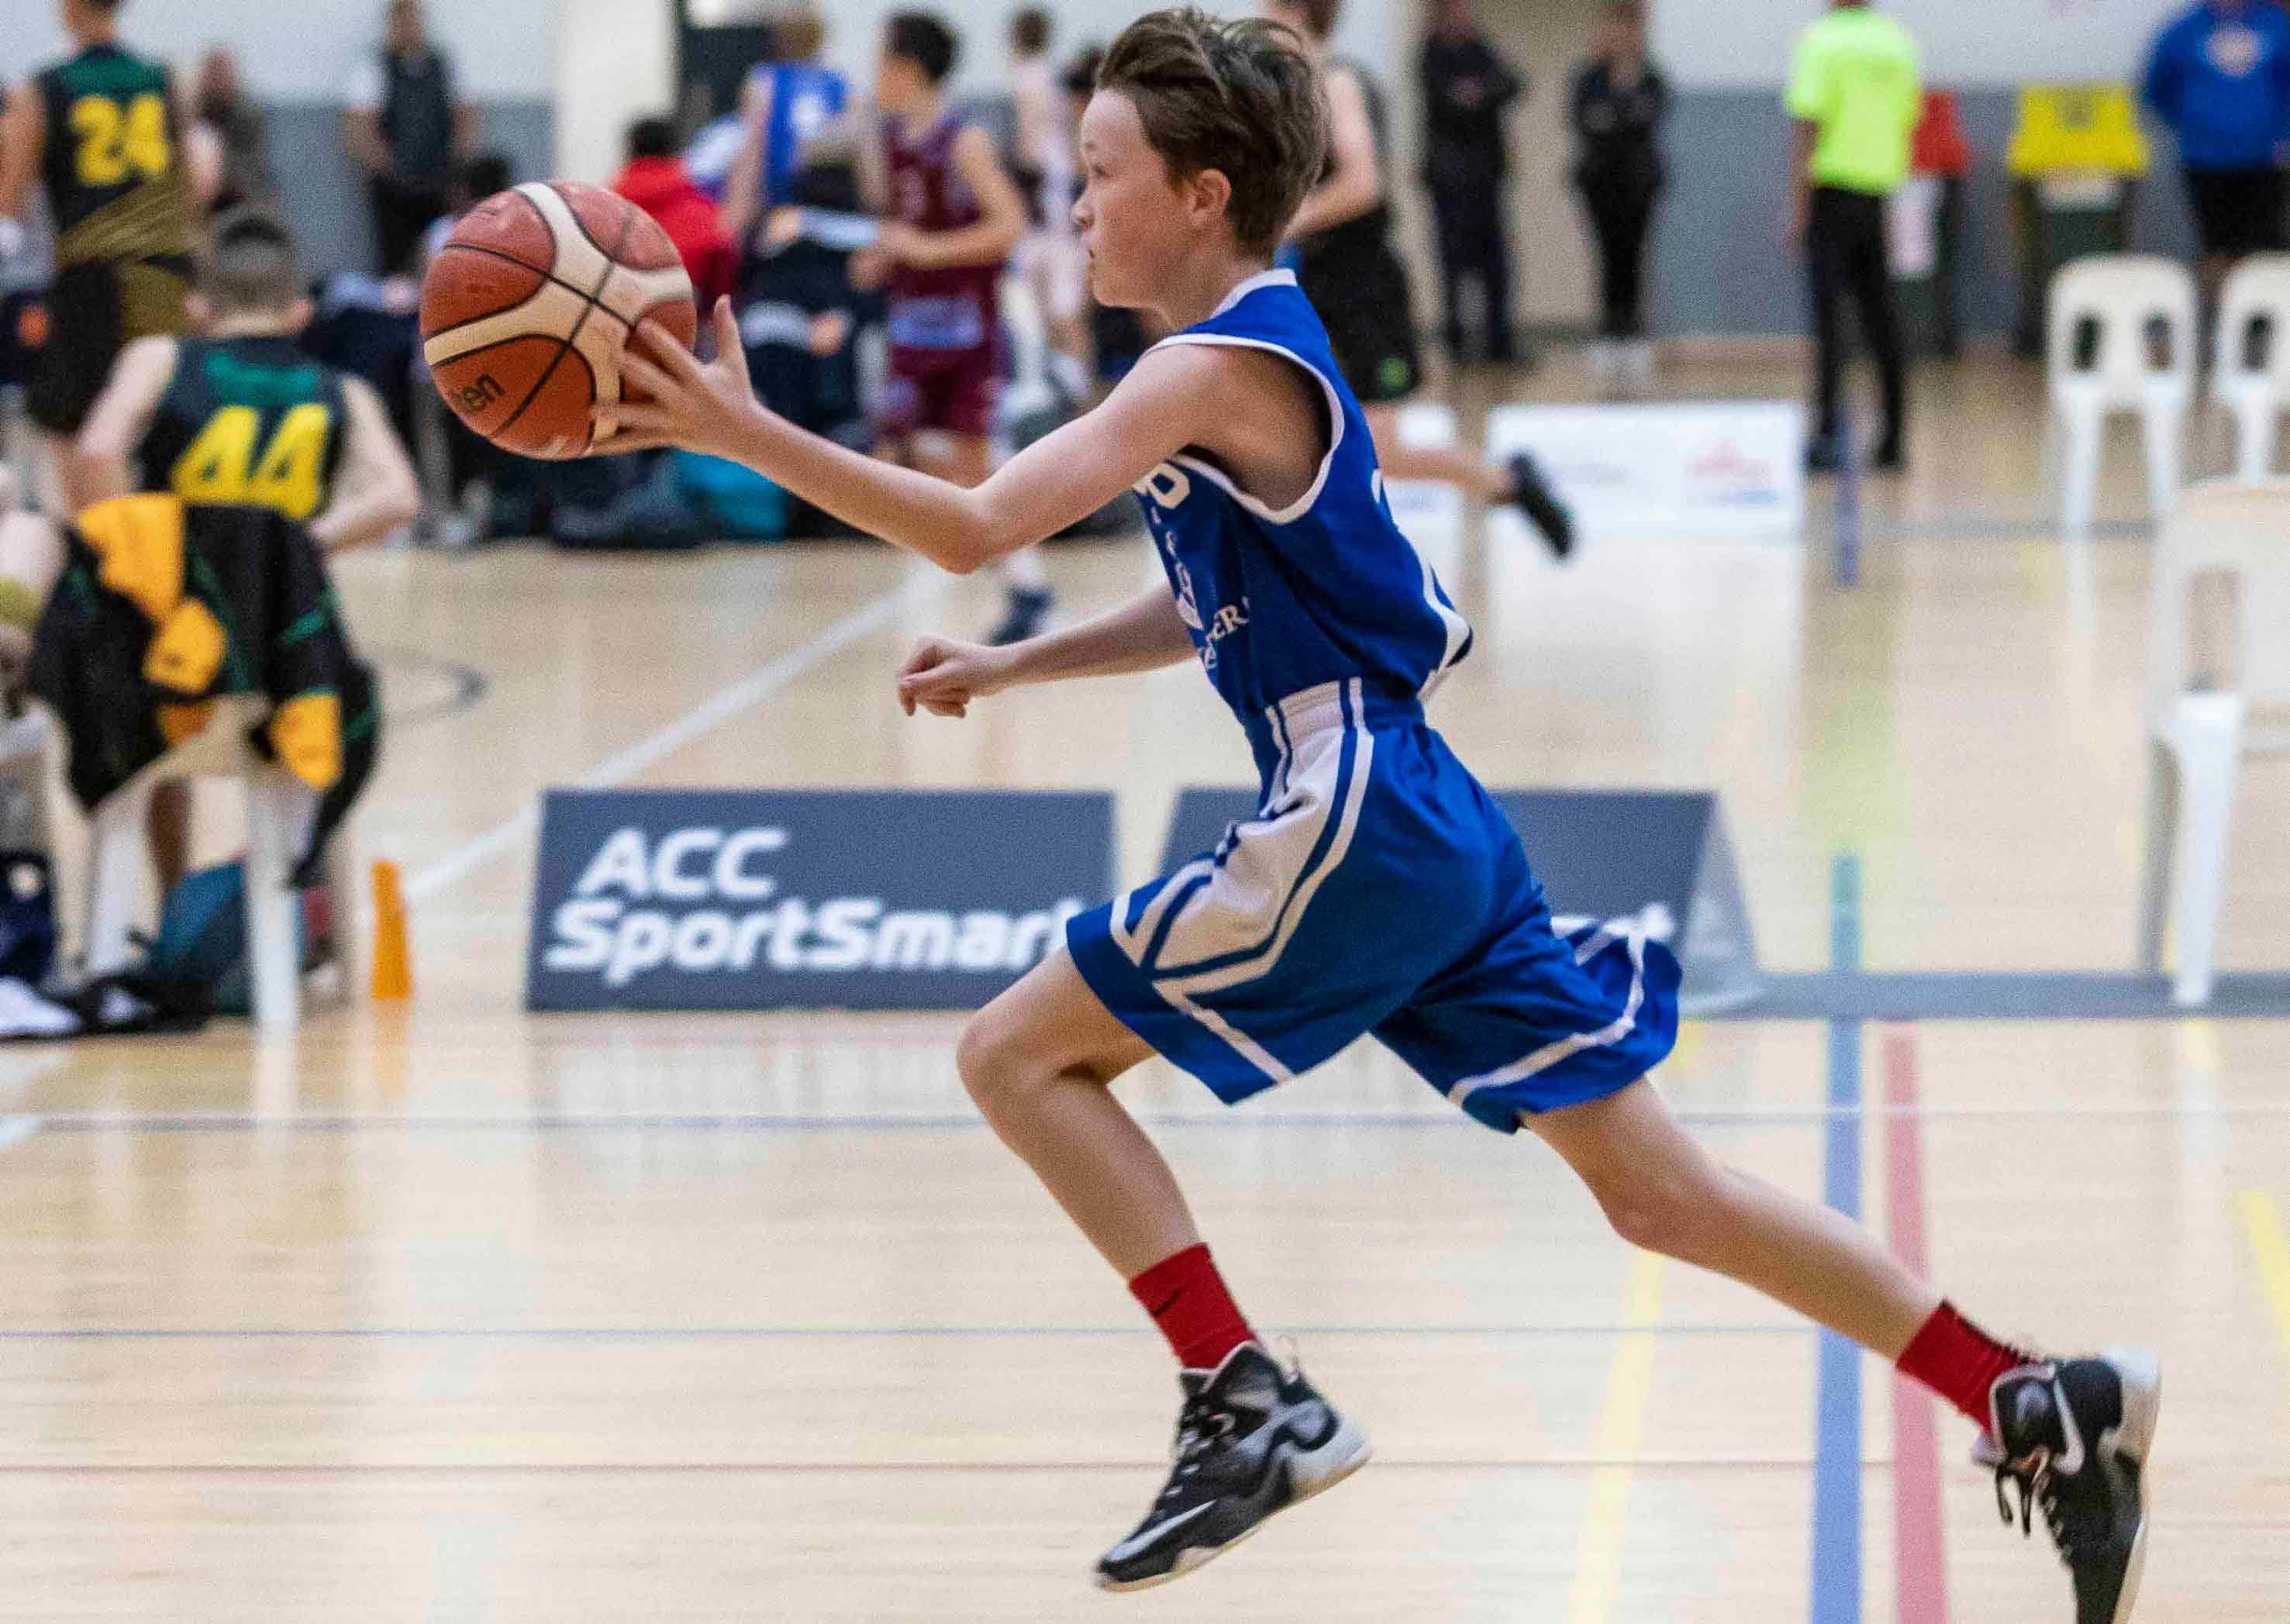 Saint-Kentigern-Boys'-School-Sports-Basketball.jpg